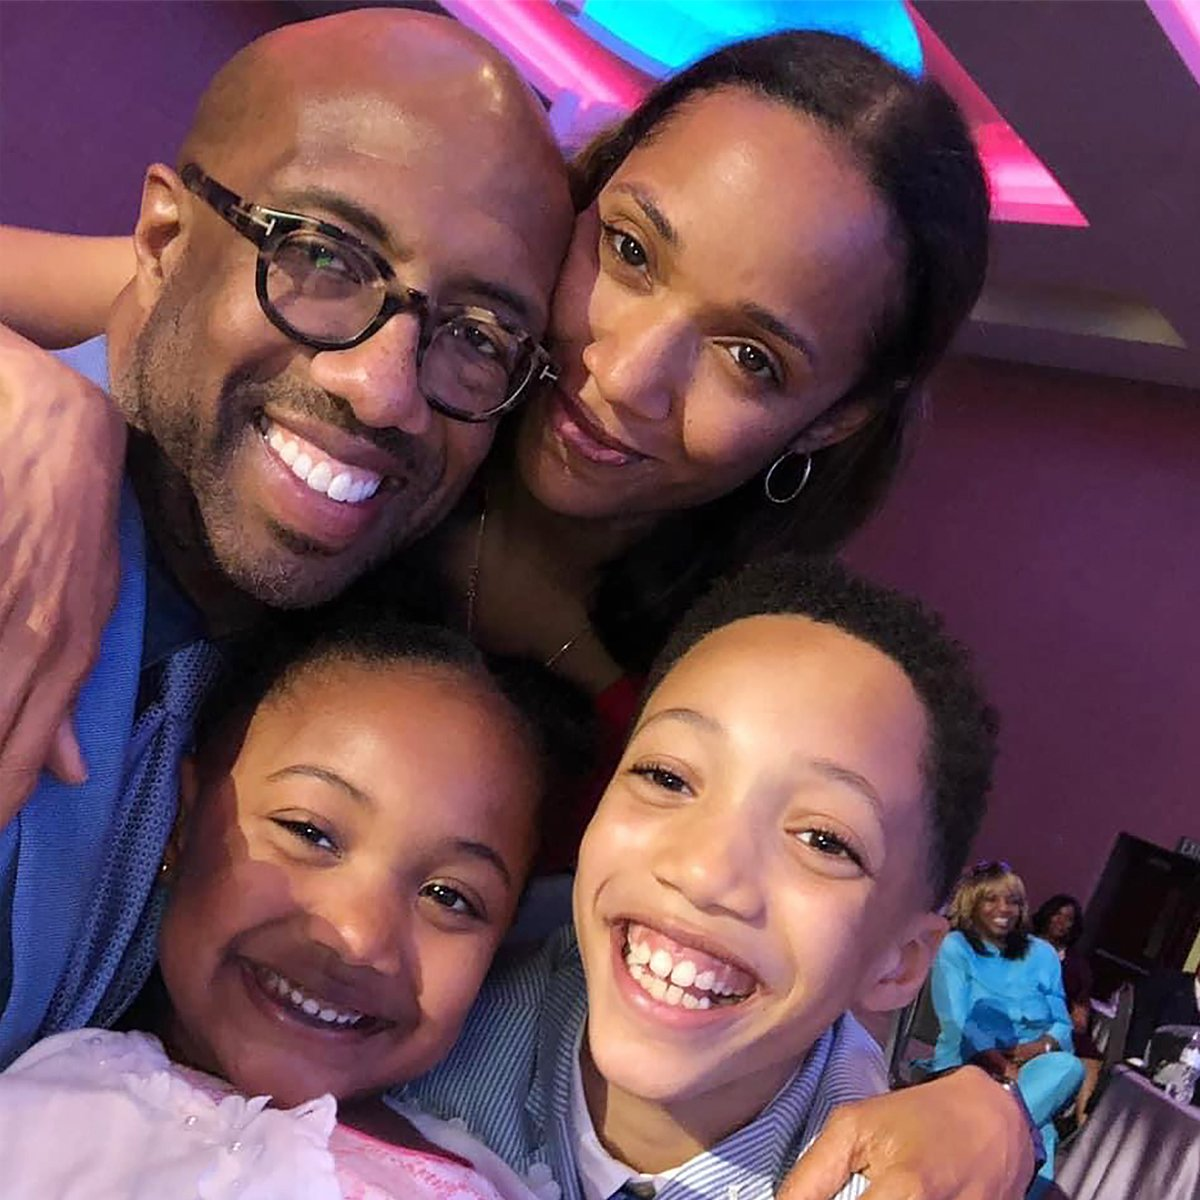 Michael Sorrell with his family